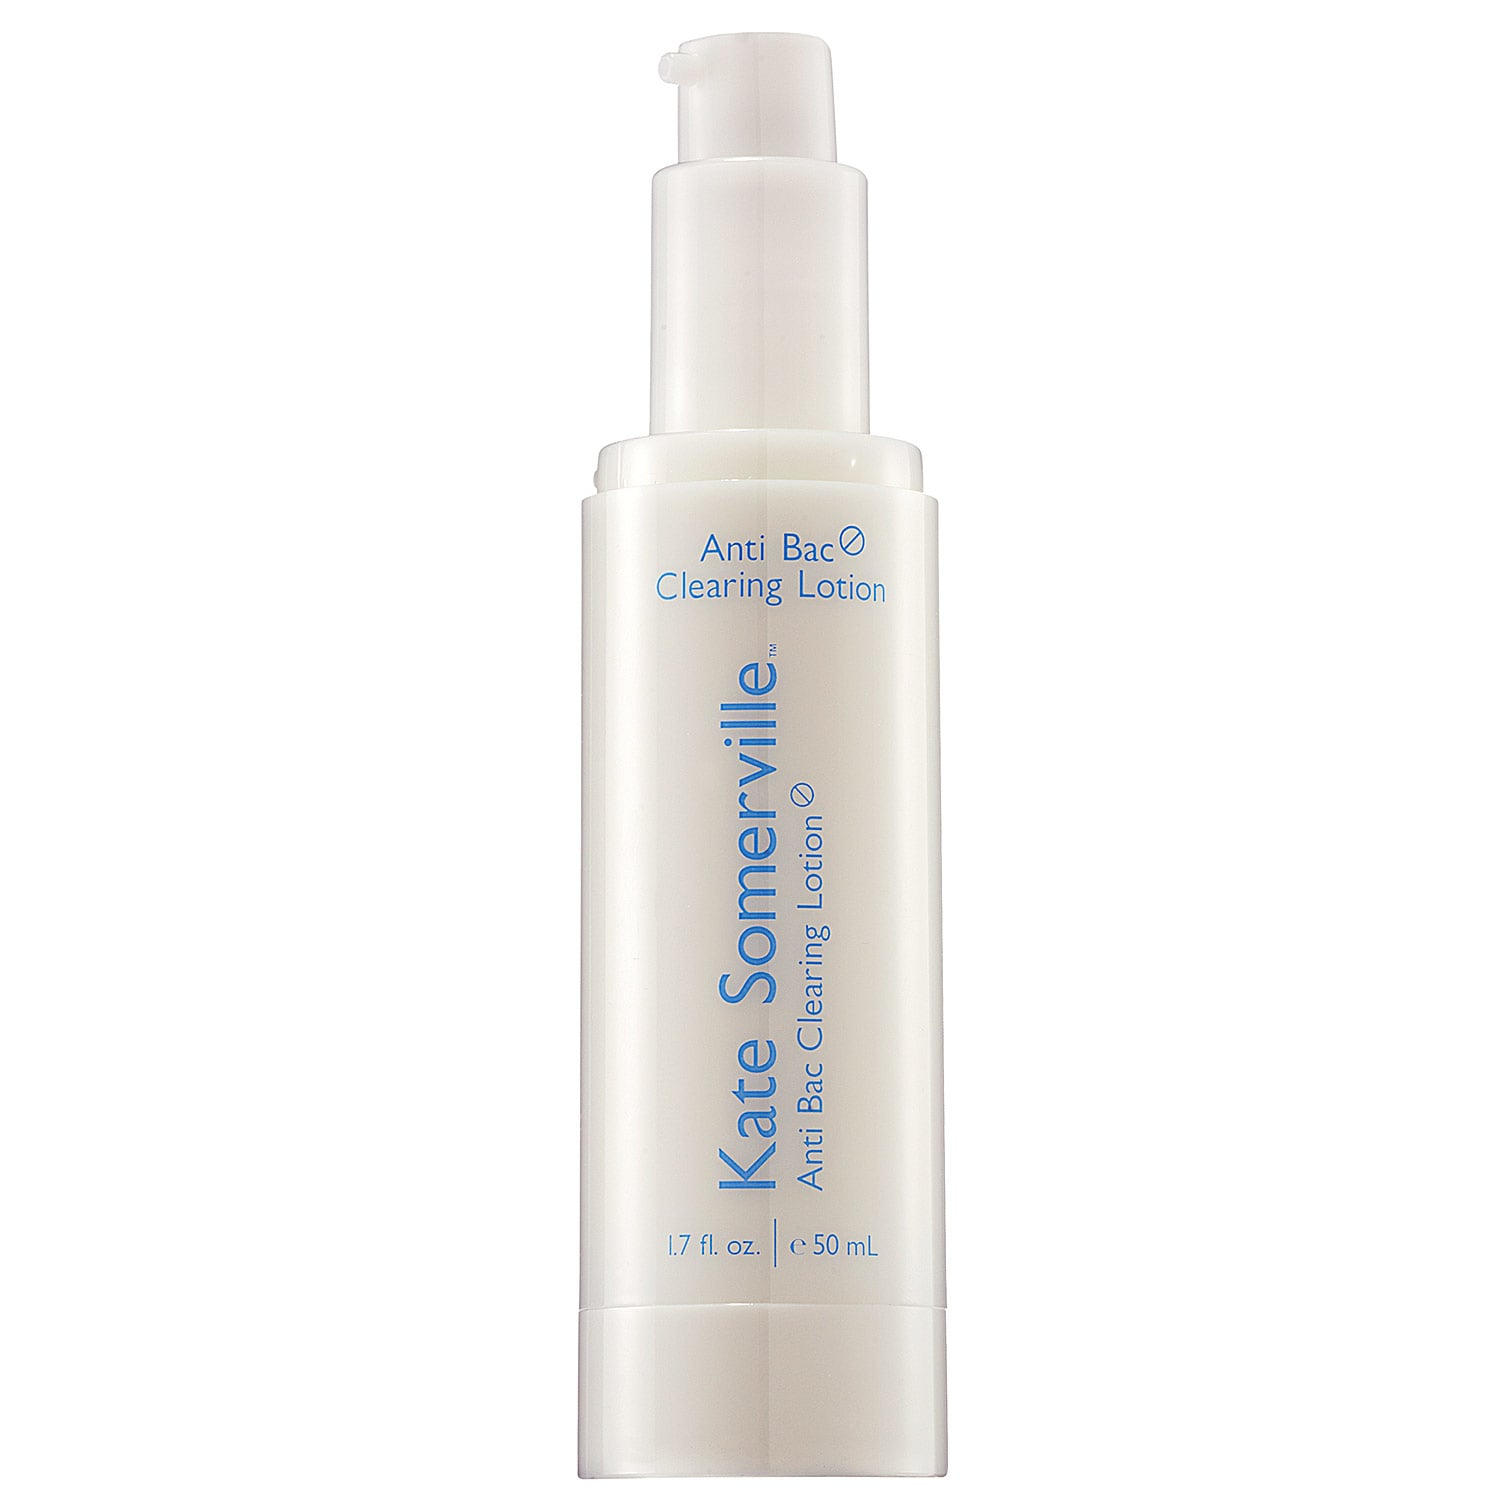 Anti Bac Clearing Lotion